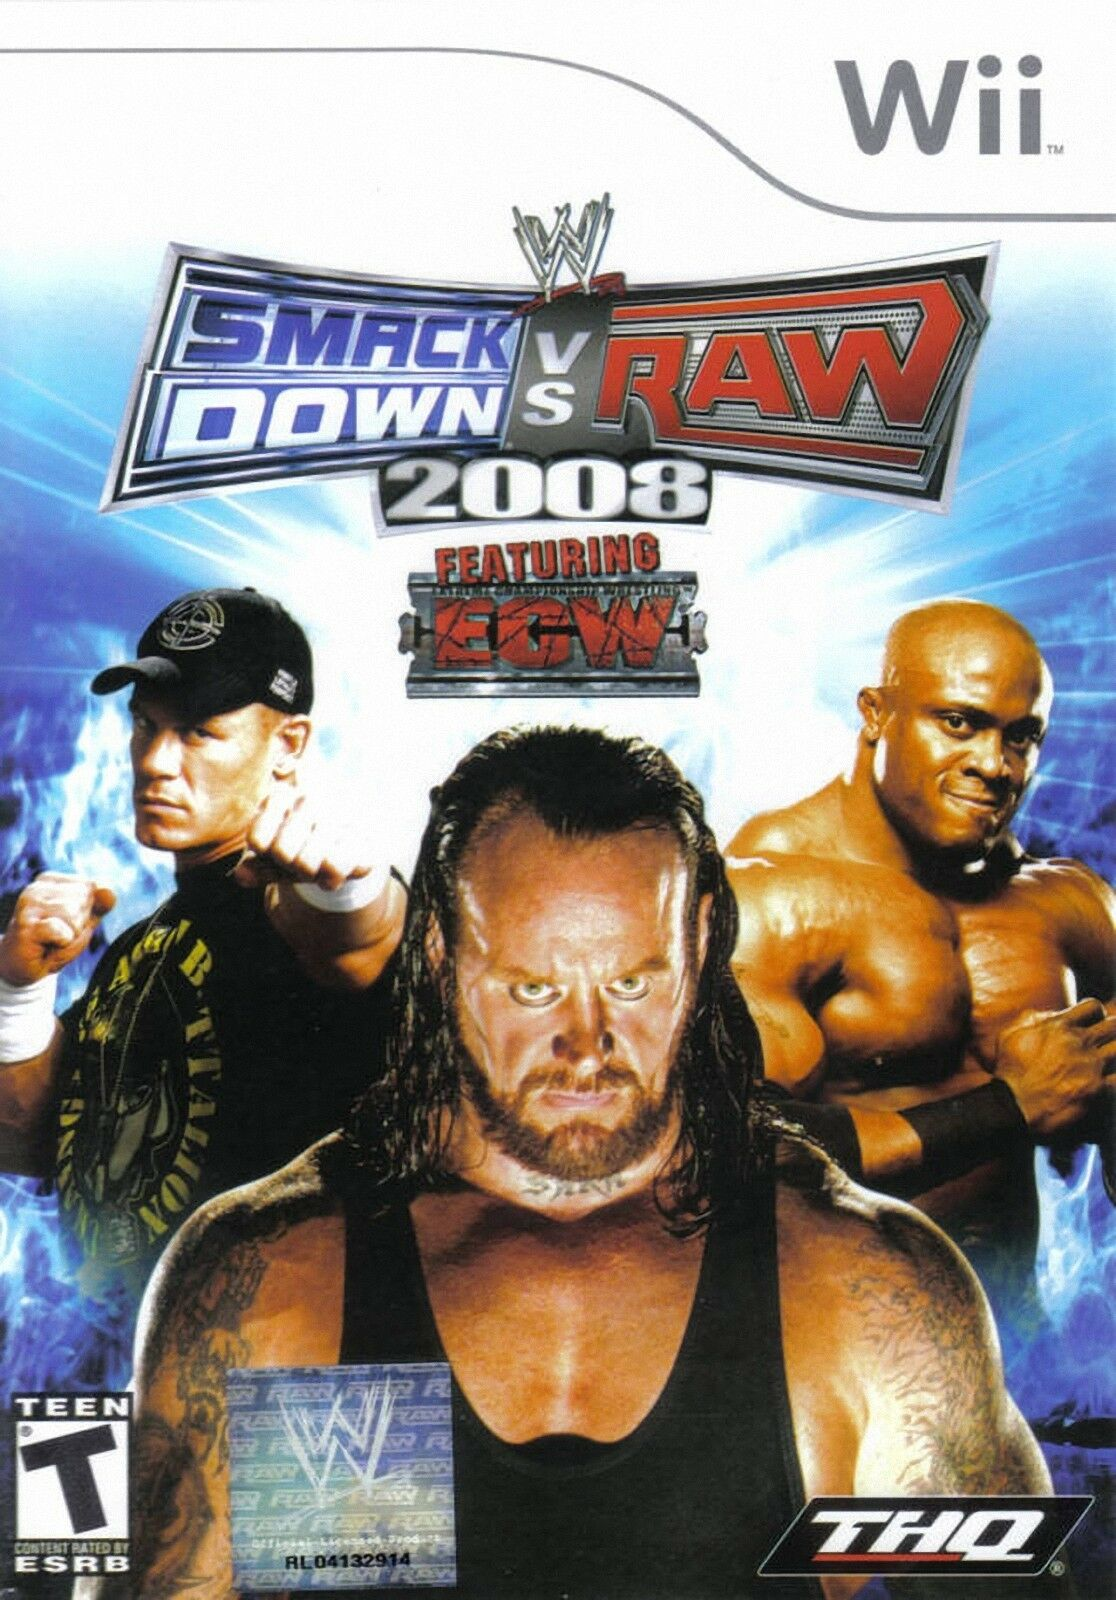 wwe smackdown vs raw 2008 featuring ecw nintendo wii 2007 ebay